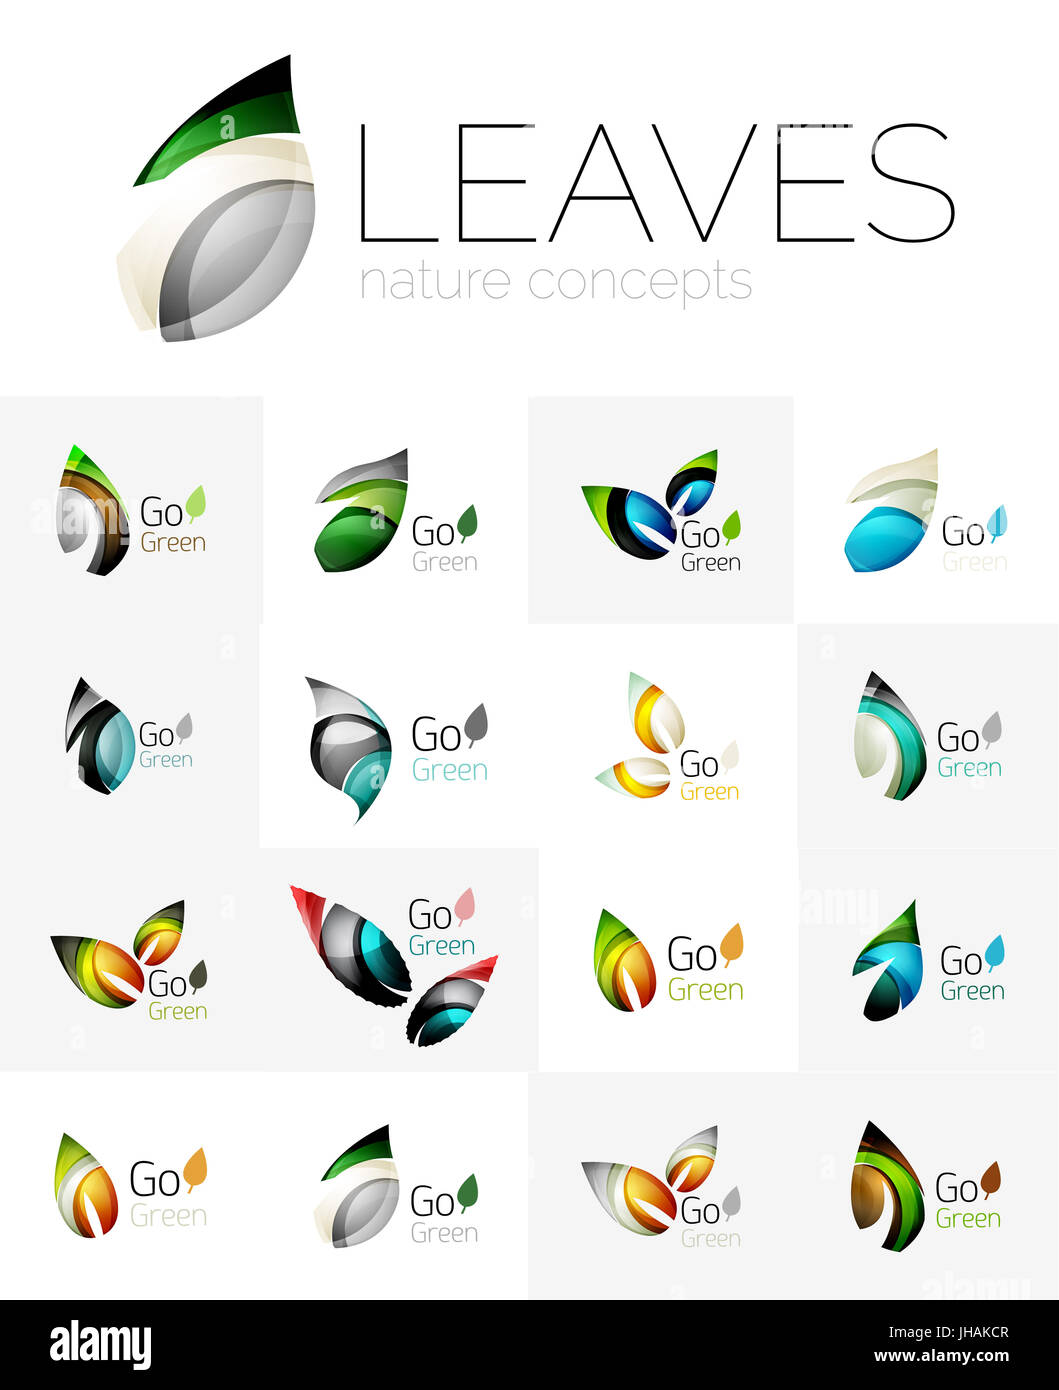 Leaf logo set. collection of abstract geometric design futuristic leaves - go green logotypes. Created with color - Stock Image